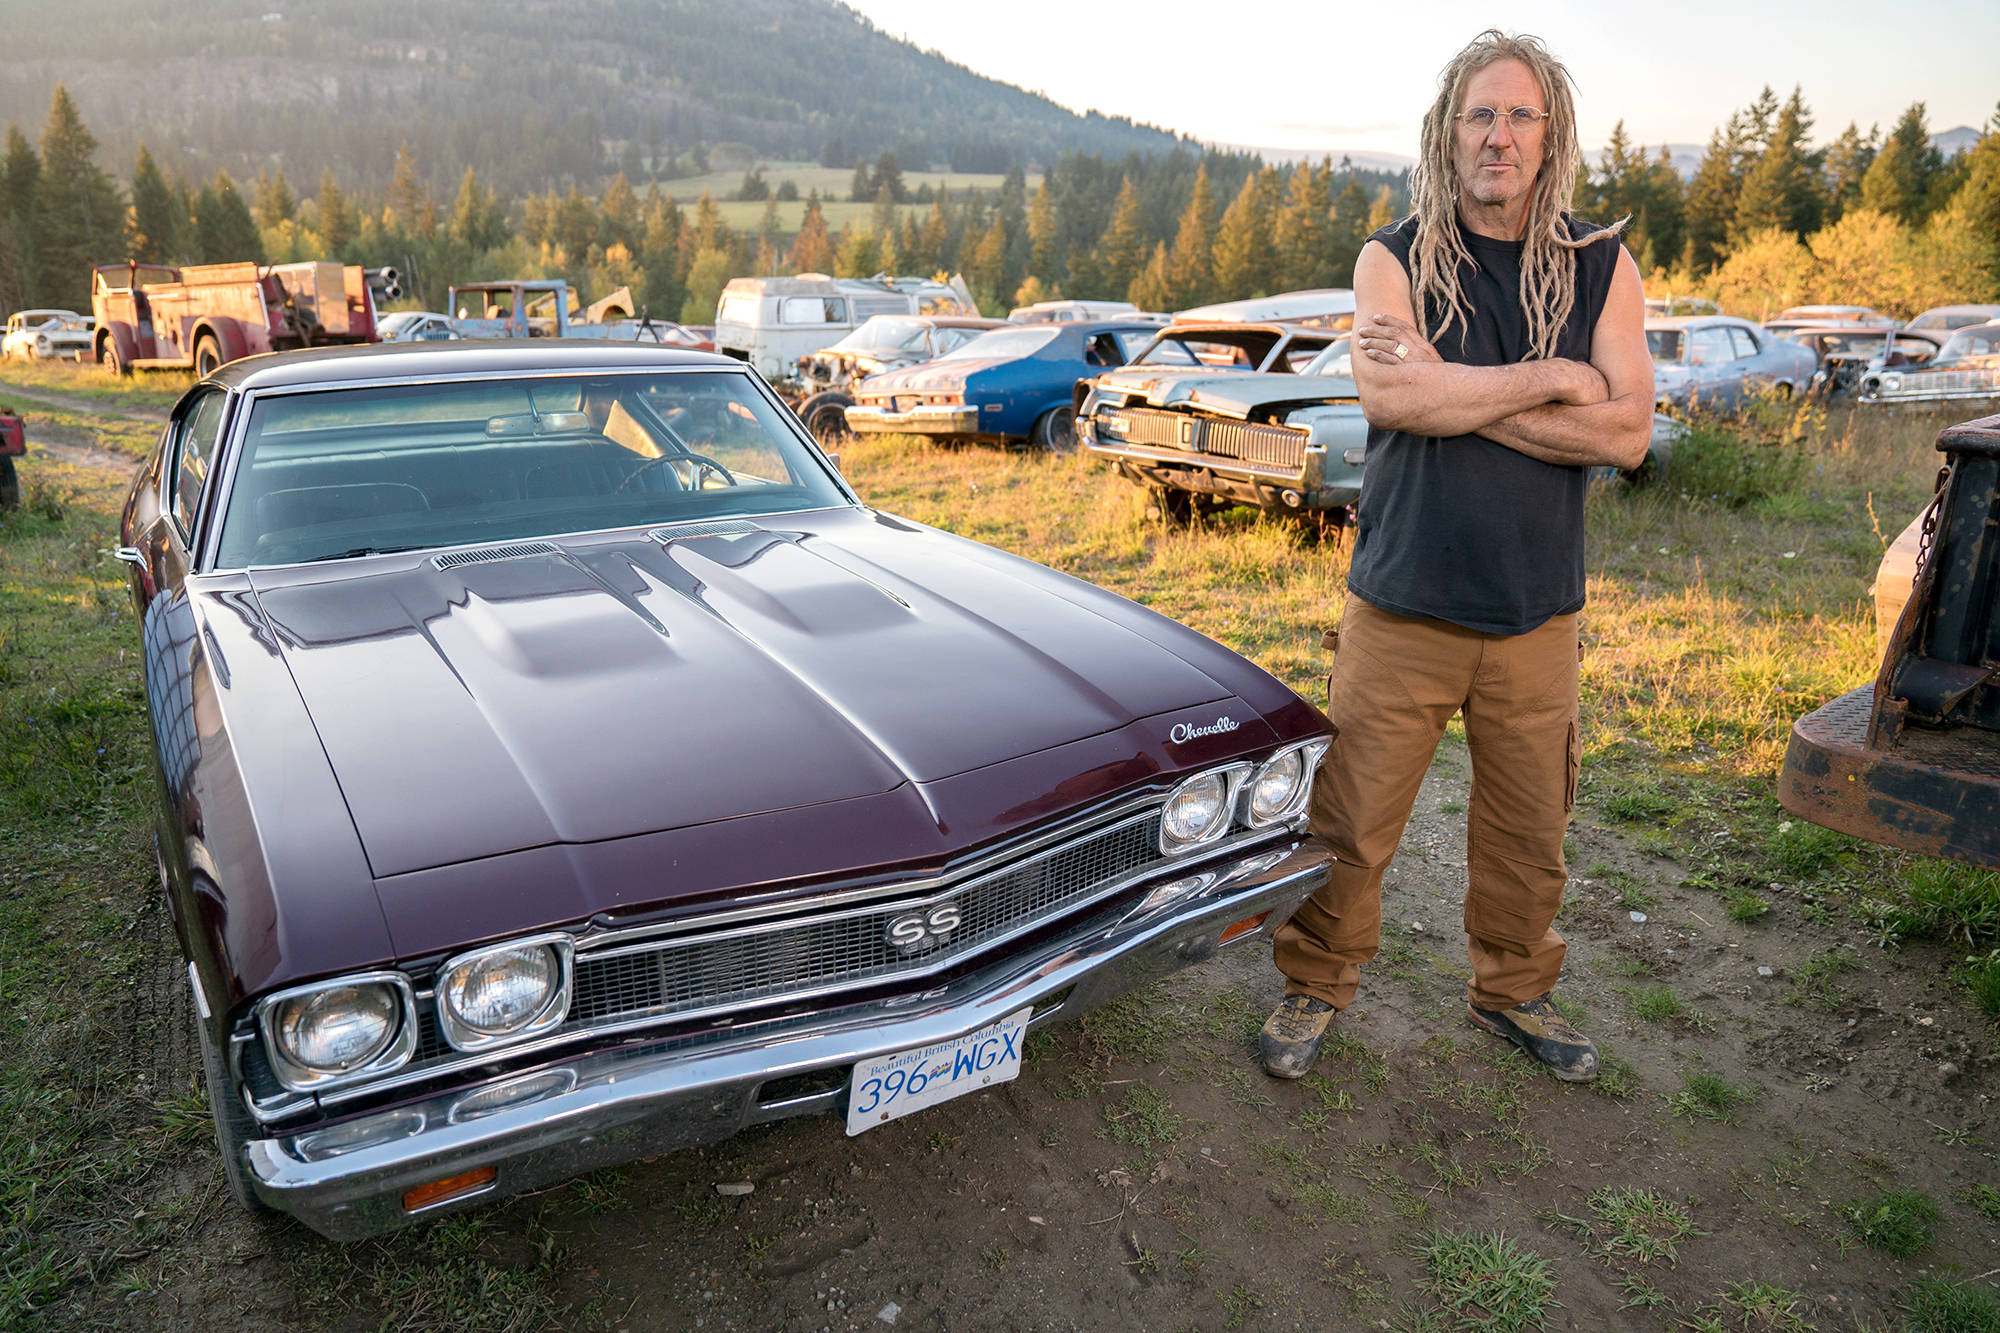 Mike Hall, shown here with a restored Chevelle SS at his property near Tappen, is the focal point of the History Channel show Rust Valley Restorers which premiers Dec. 6. (Image contributed)